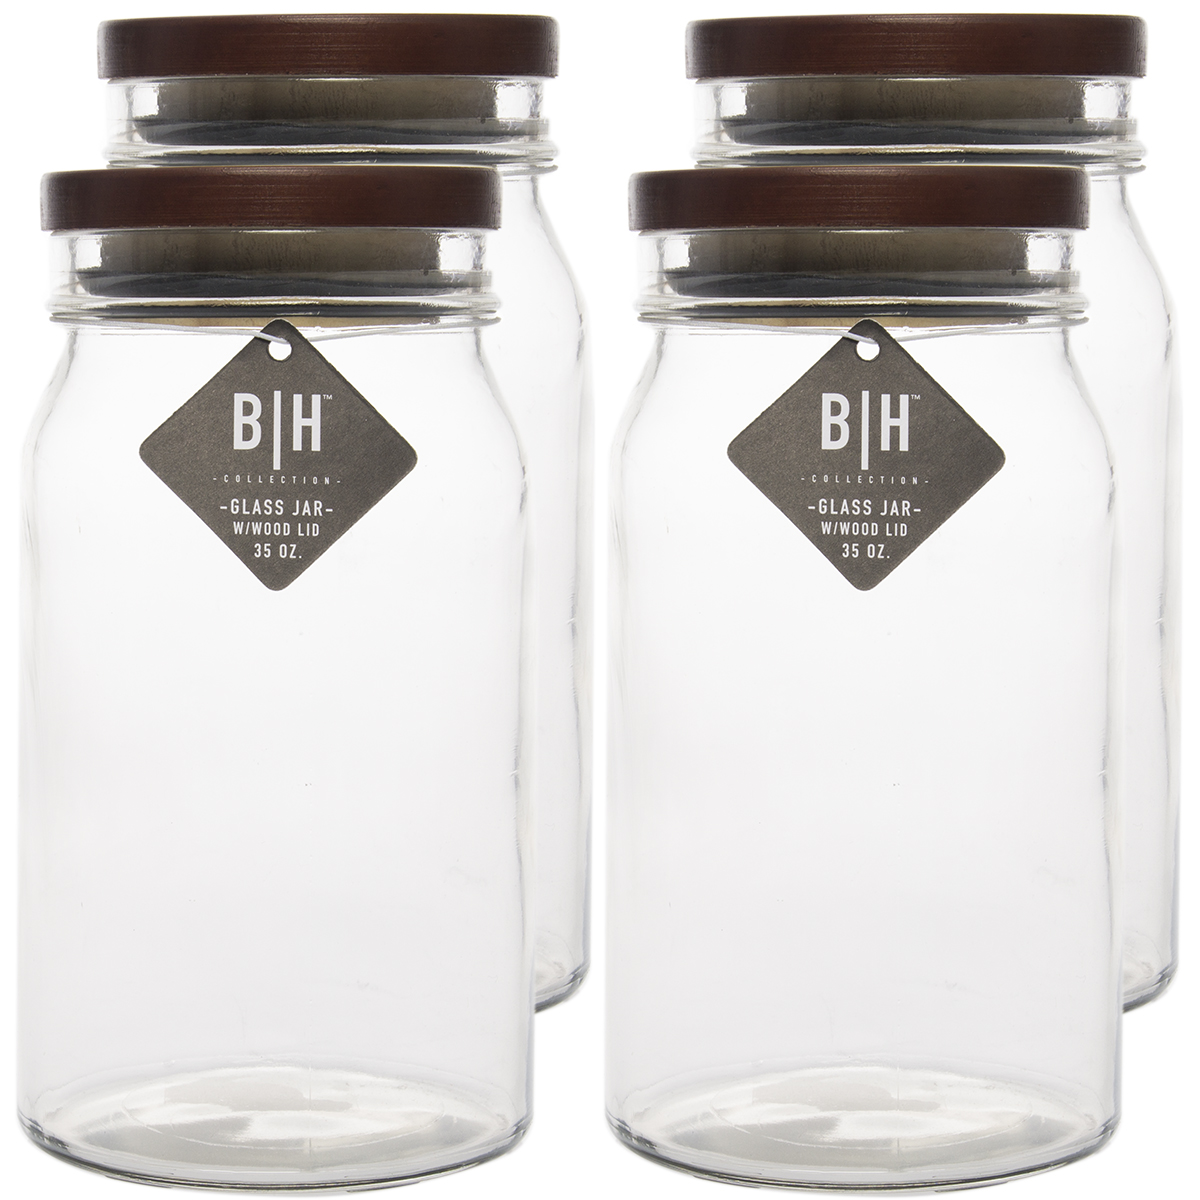 Blue Harbor (4 Pack) 35oz Clear Glass Storage Jars With Wood Lids Decorative Kitchen or Craft Jar Set by Blue Harbor